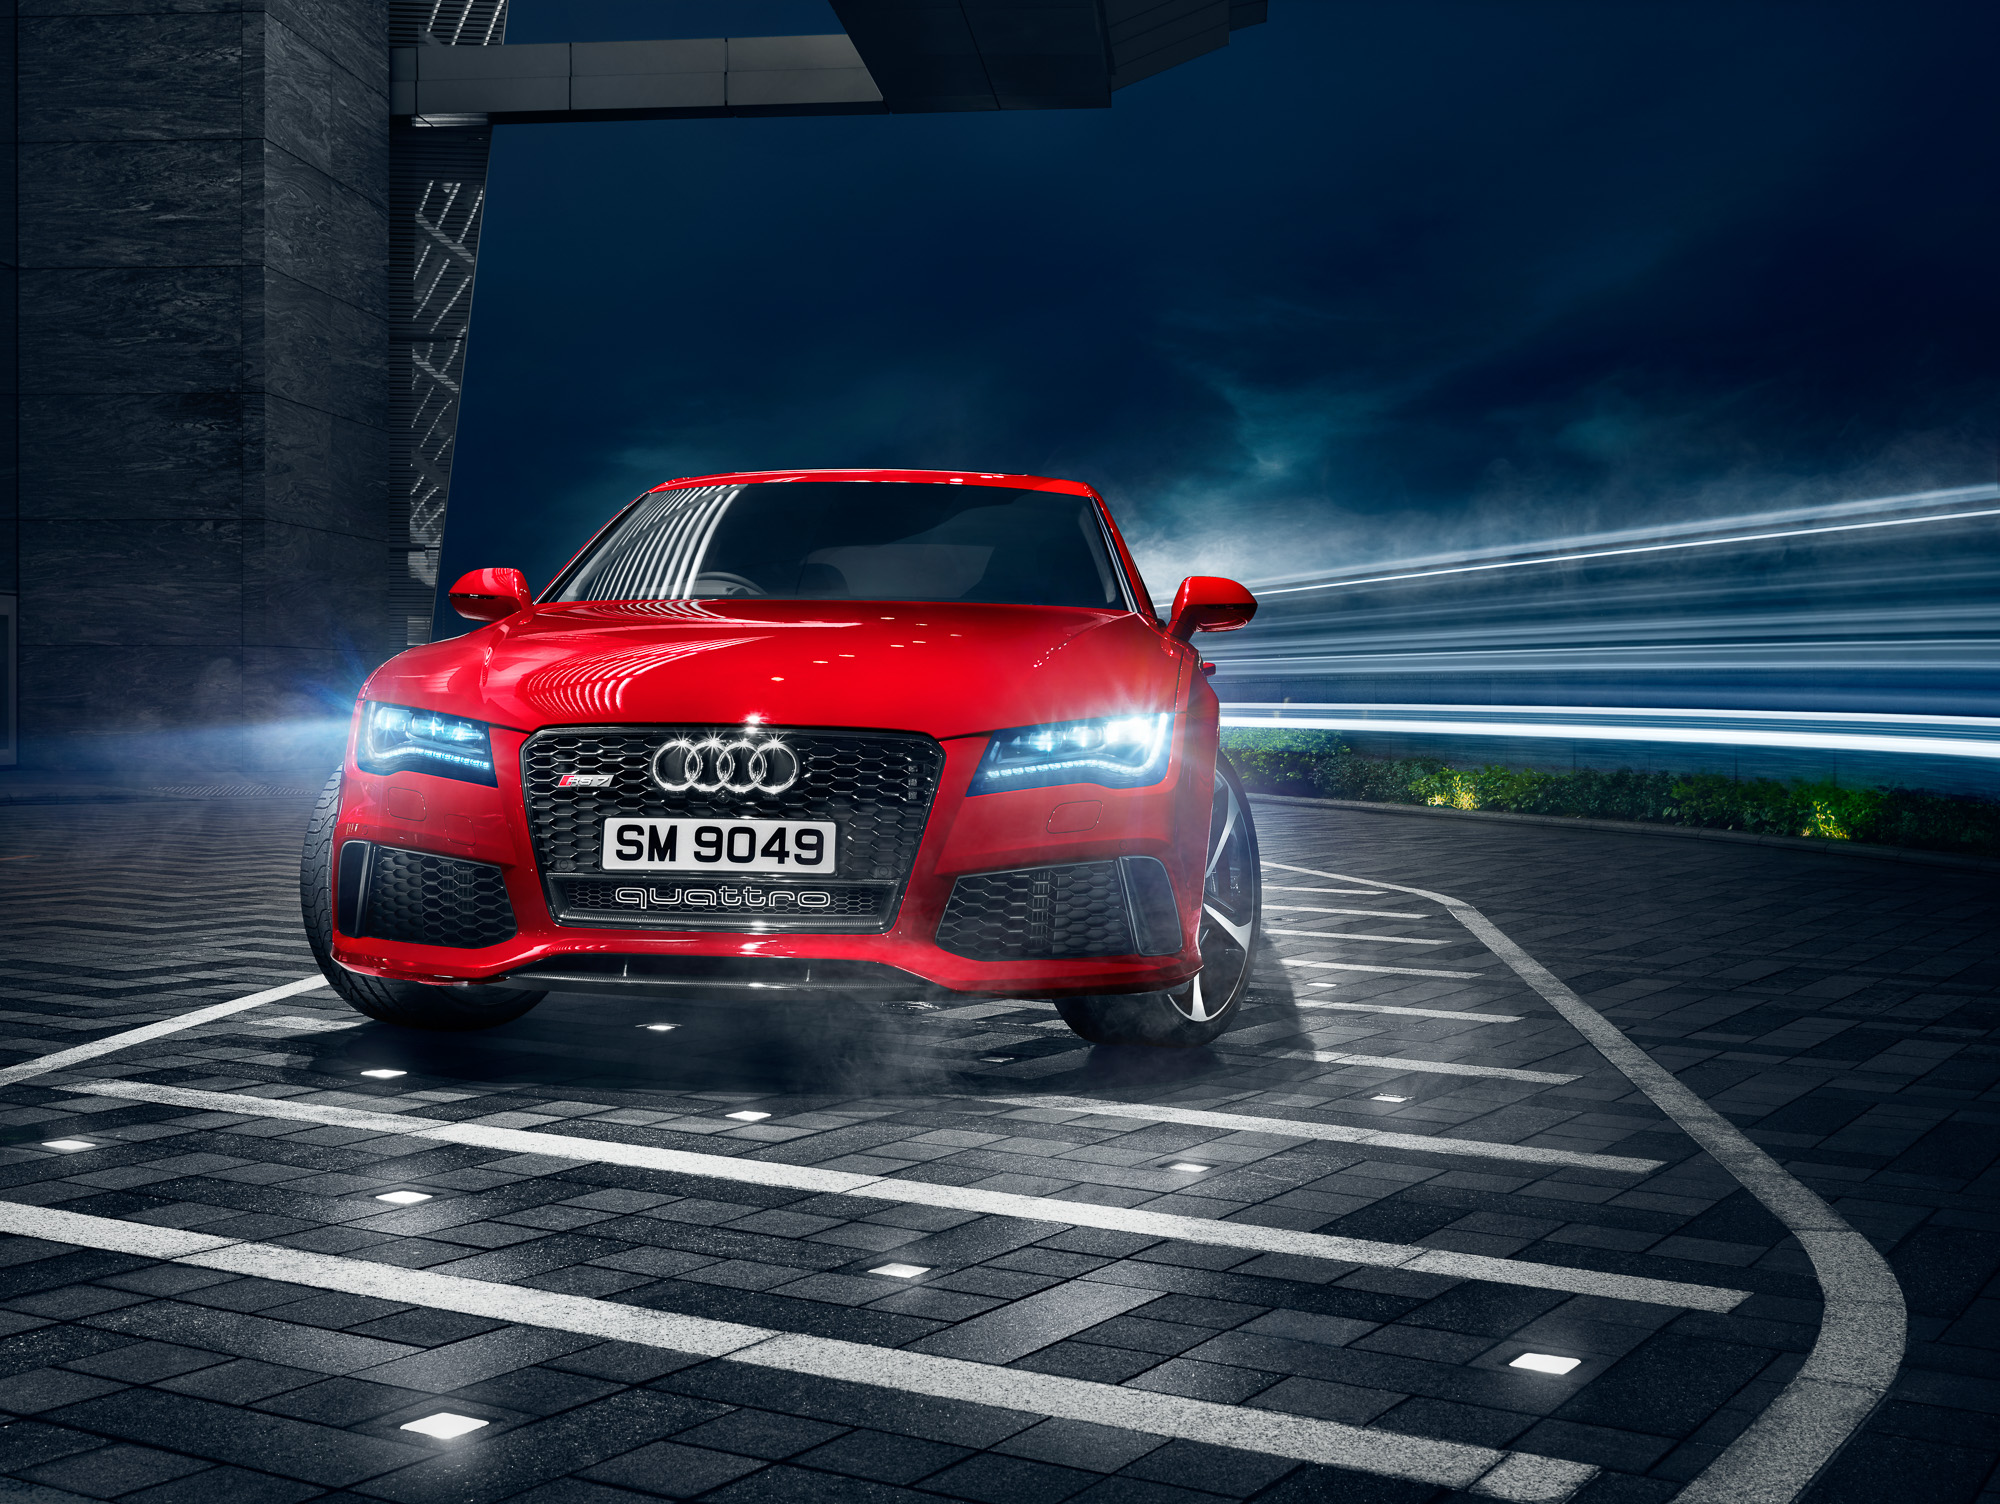 migs-foto-cgi-hong-kong-car-automotive-photography-photographer-2014-Prestige-Audi-RS7-Front_F-2K